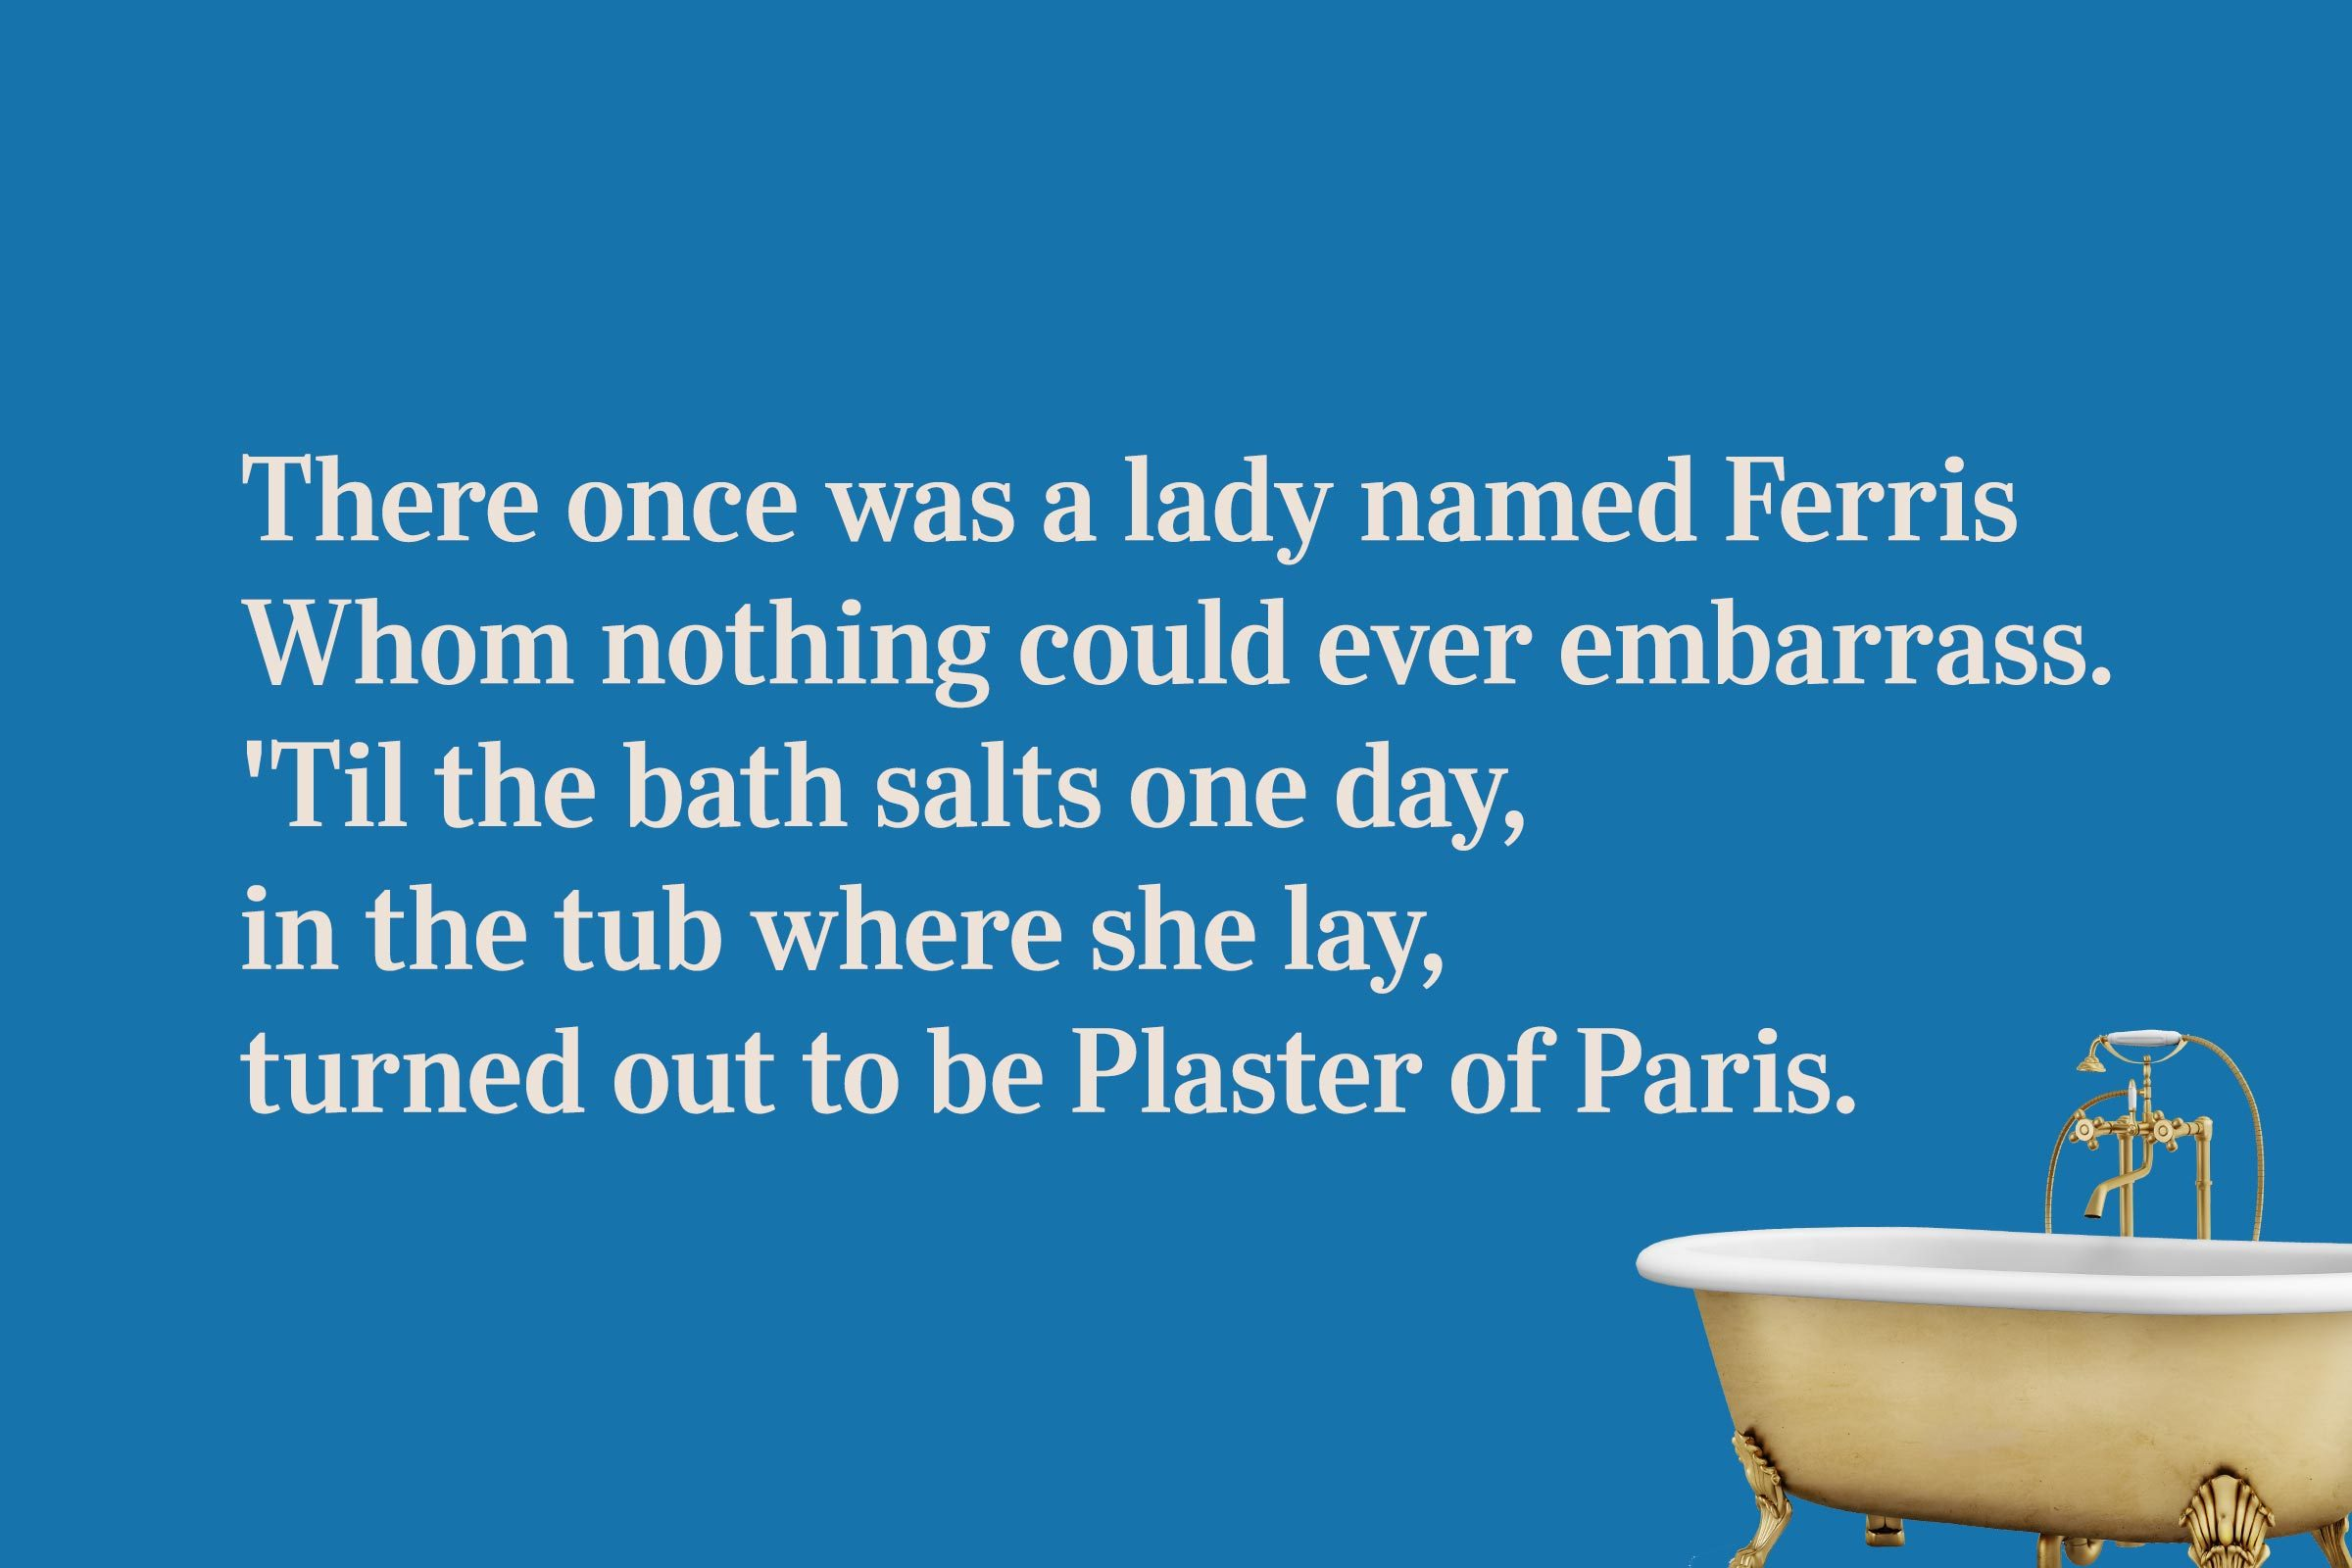 There once was a lady named Ferris / Whom nothing could ever embarrass. / 'Til the bath salts one day, / in the tub where she lay, / turned out to be Plaster of Paris.